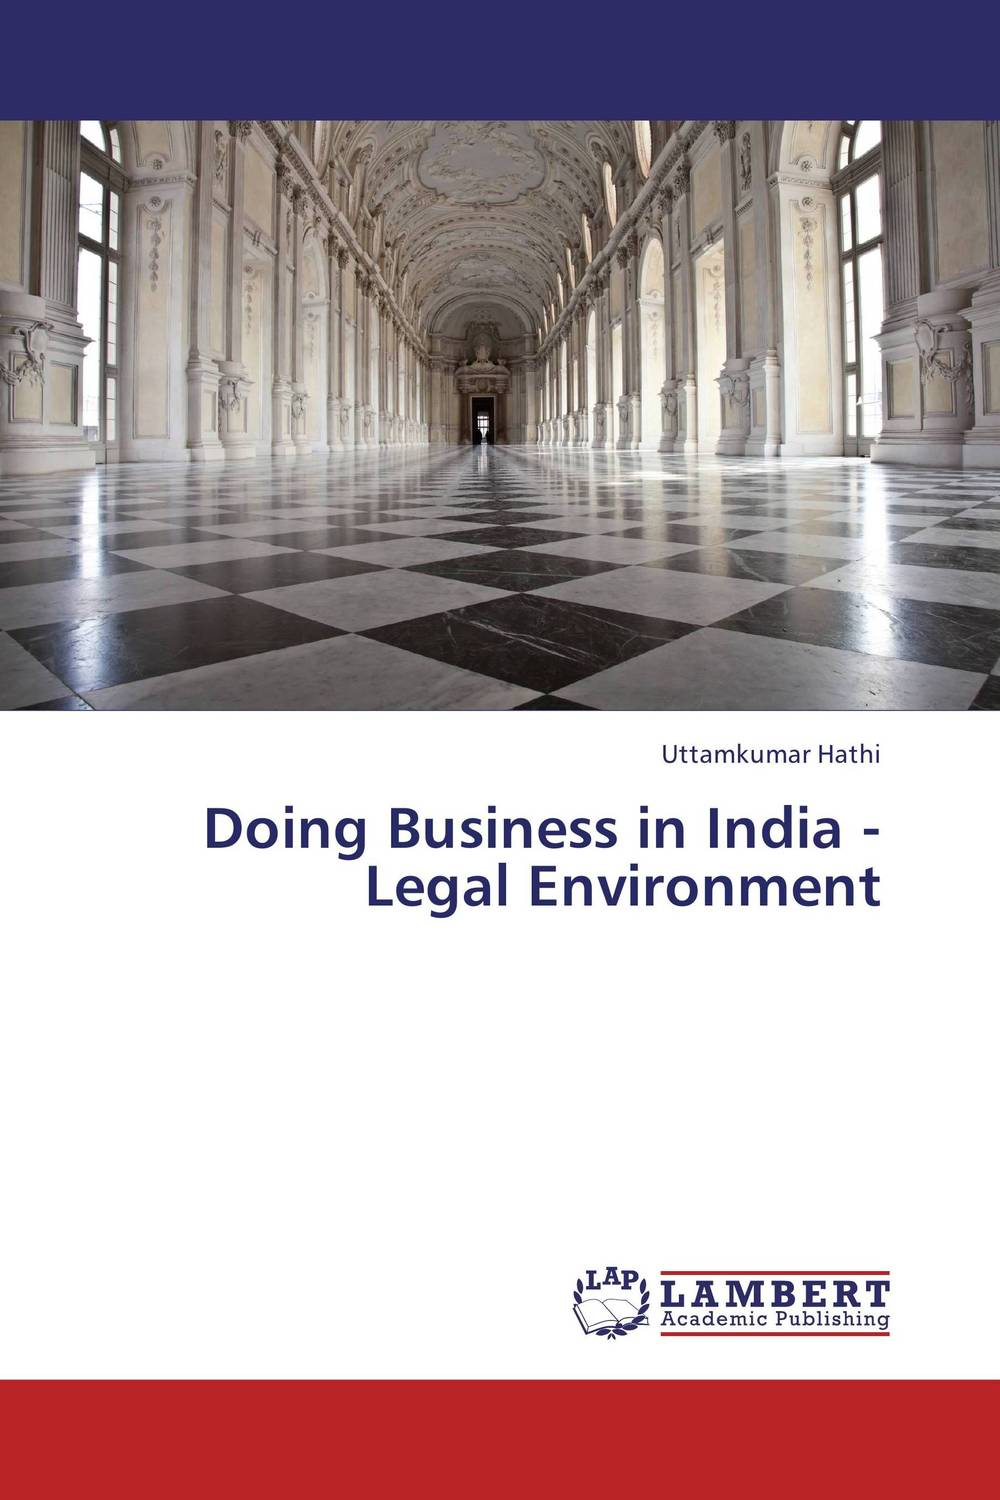 Doing Business in India - Legal Environment mastering leadership an integrated framework for breakthrough performance and extraordinary business results